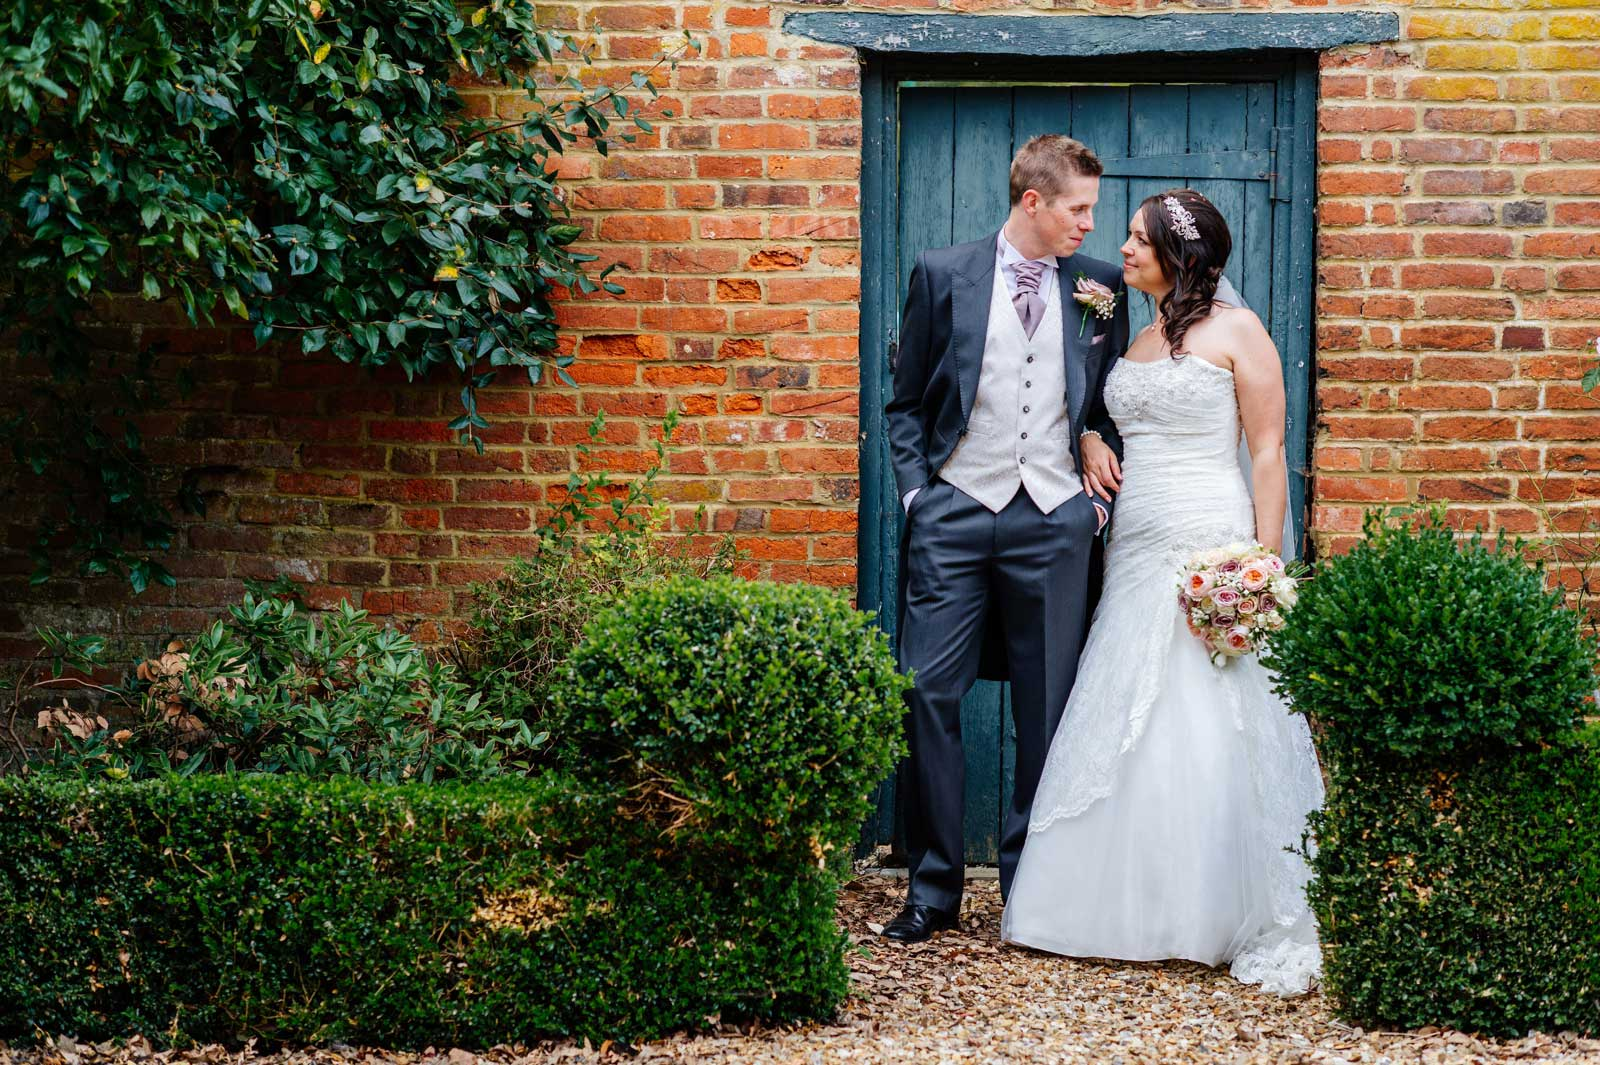 Chicheley Hall Wedding 01